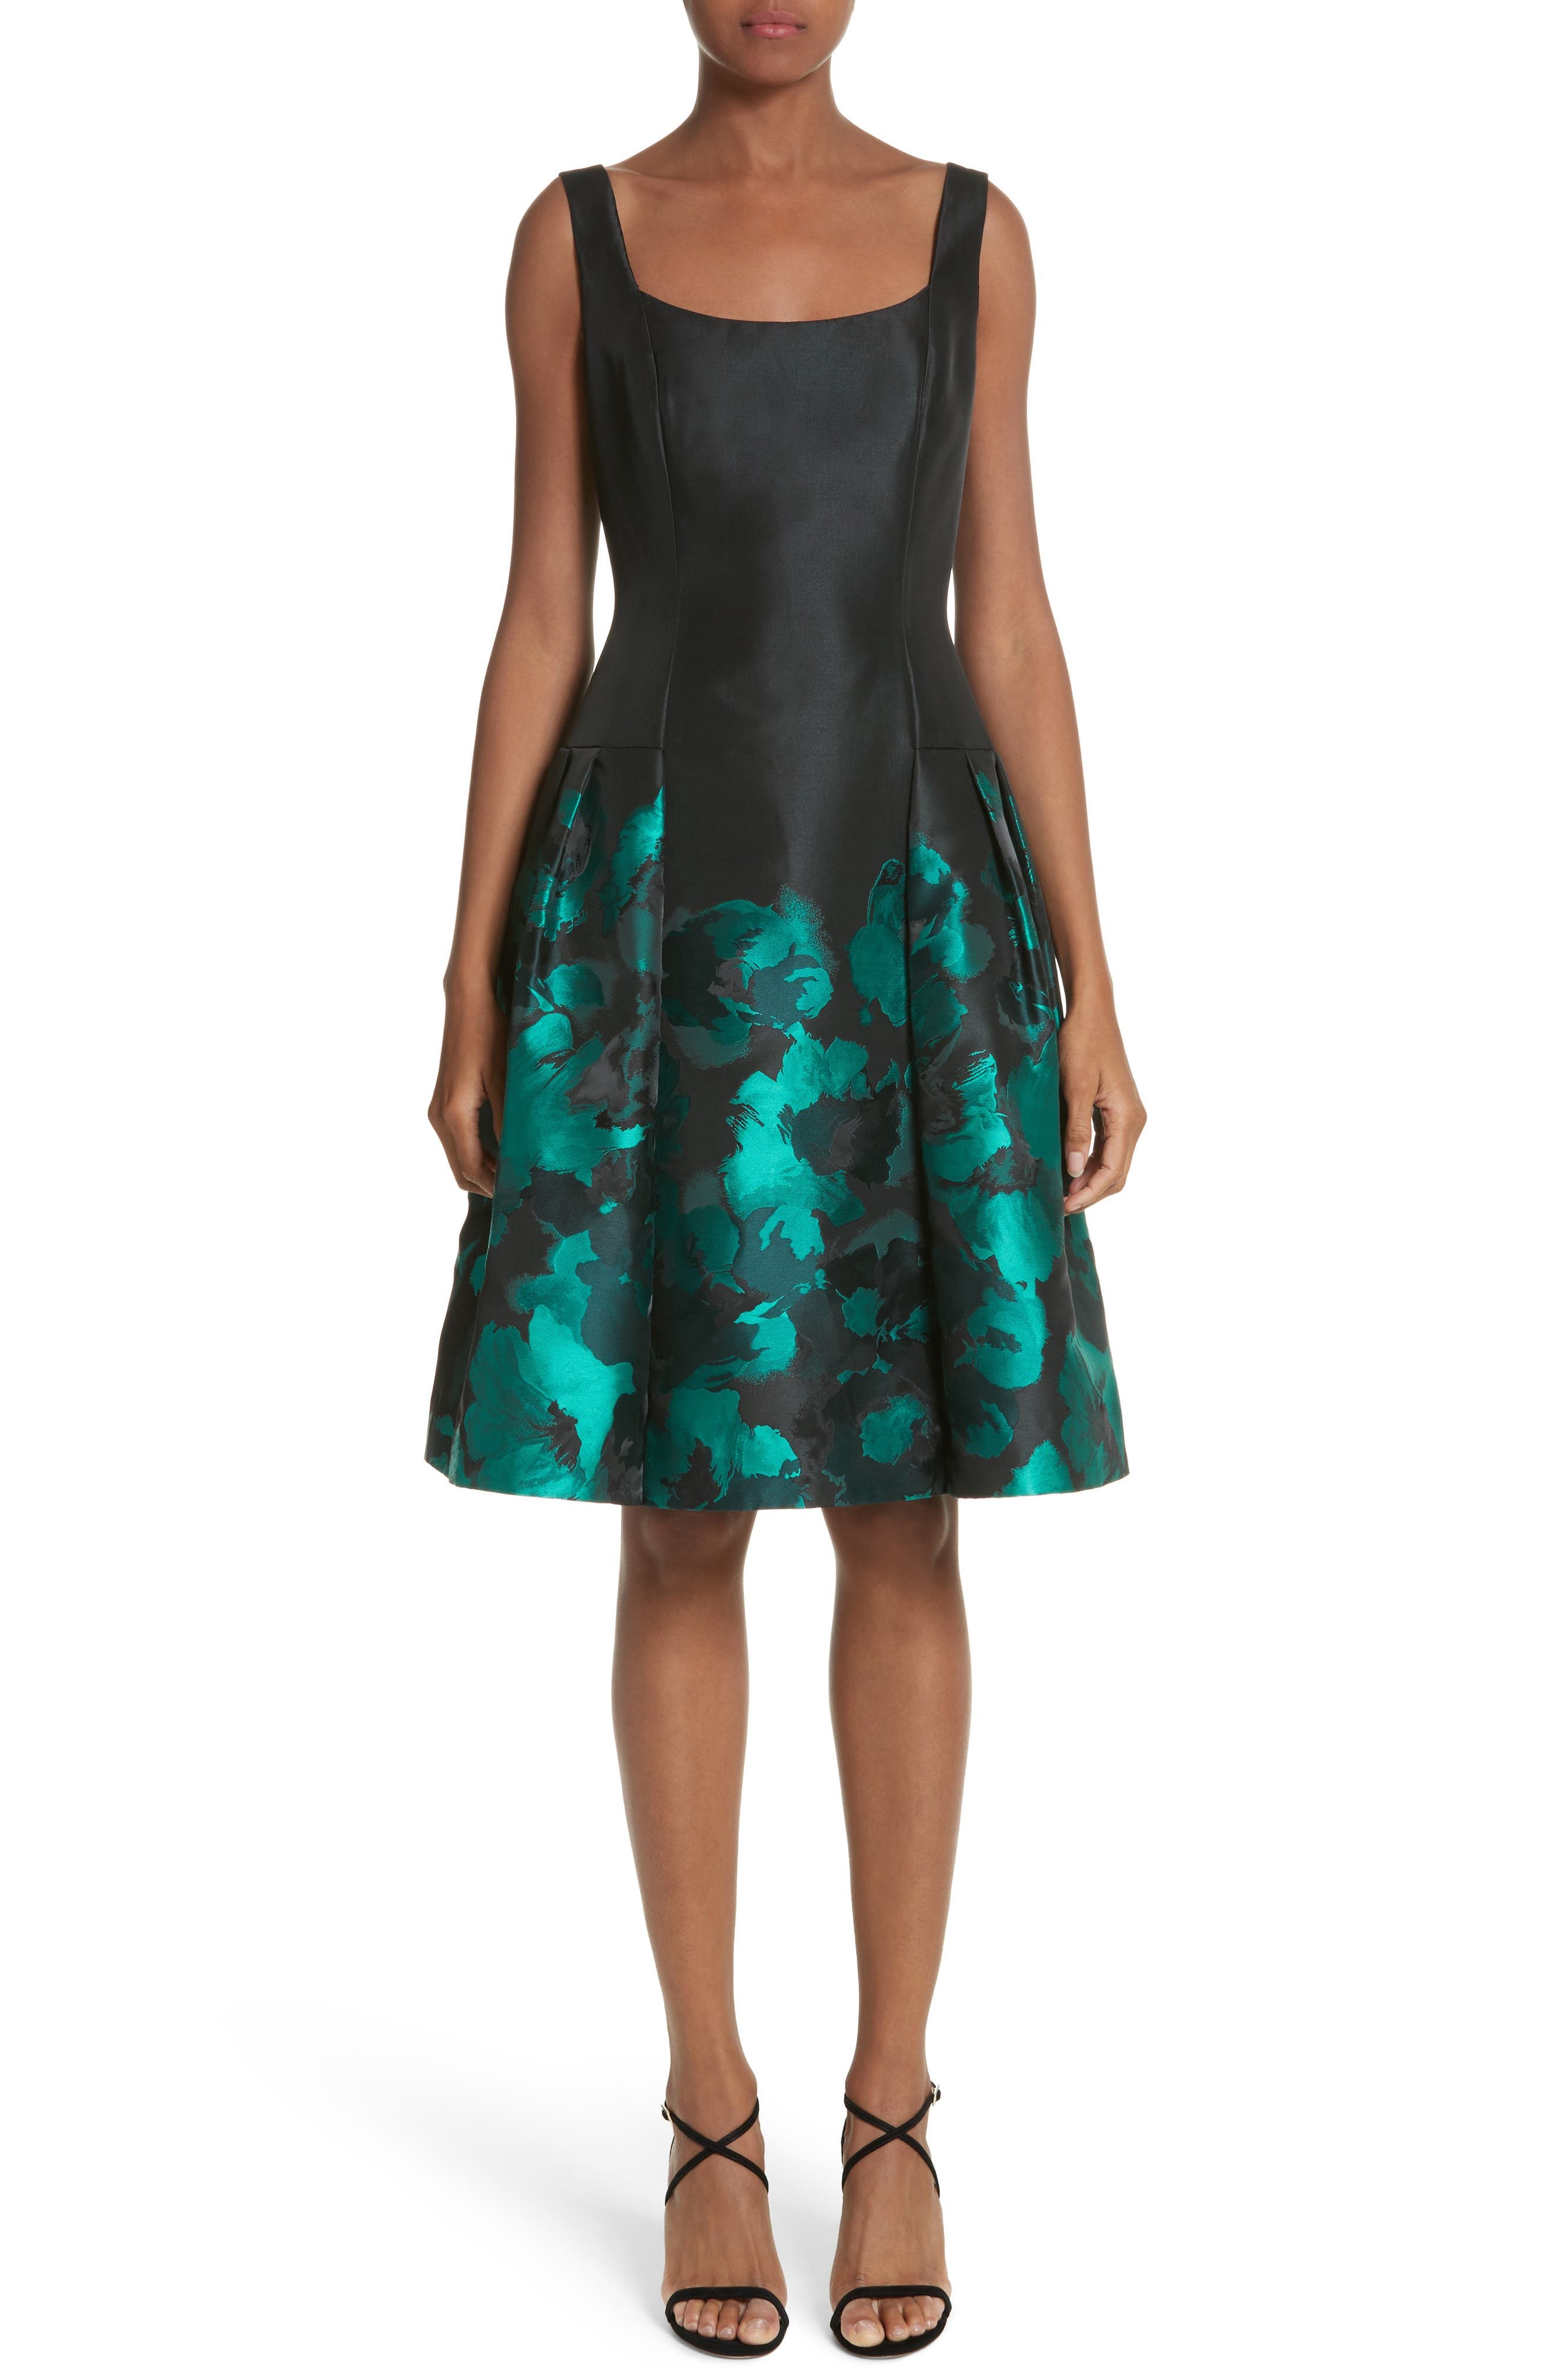 Main Image - Carmen Marc Valvo Floral Jacquard Cocktail Dress